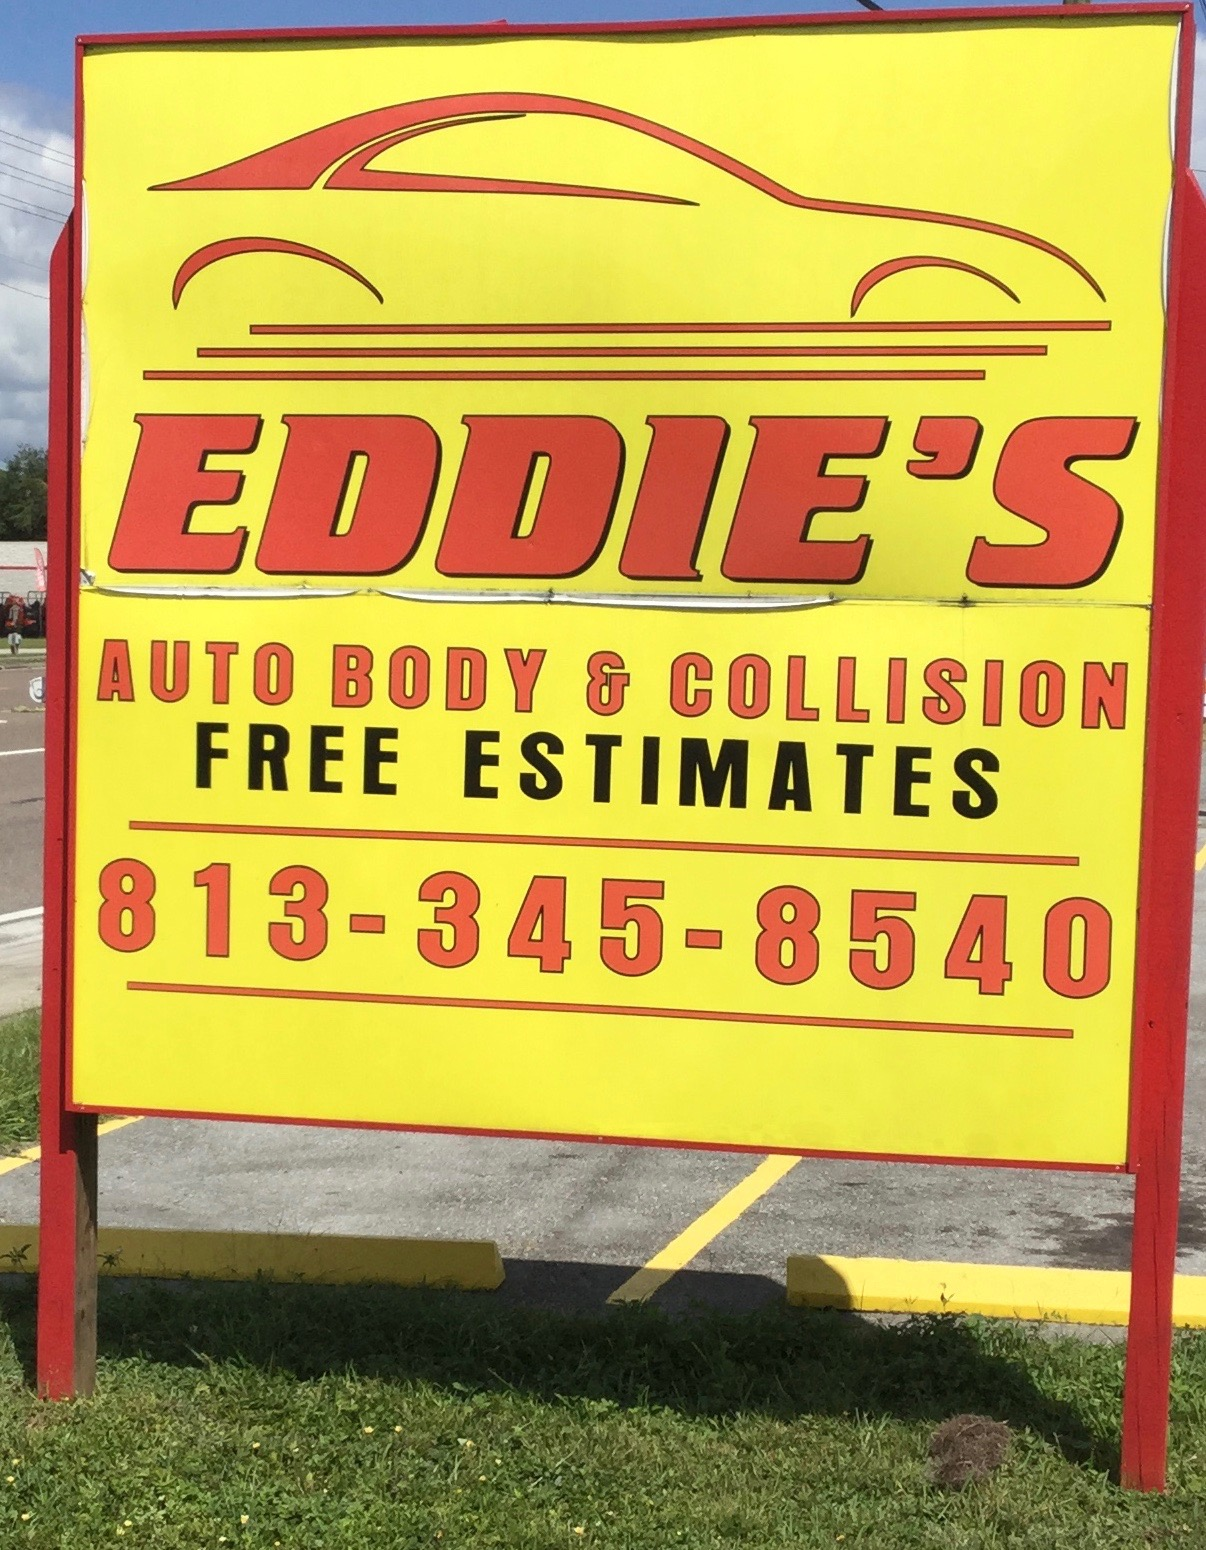 Eddie's Auto Body - We have used Eddie to keep my Mini Cooper looking good. We recommend him recommend him absolutely!